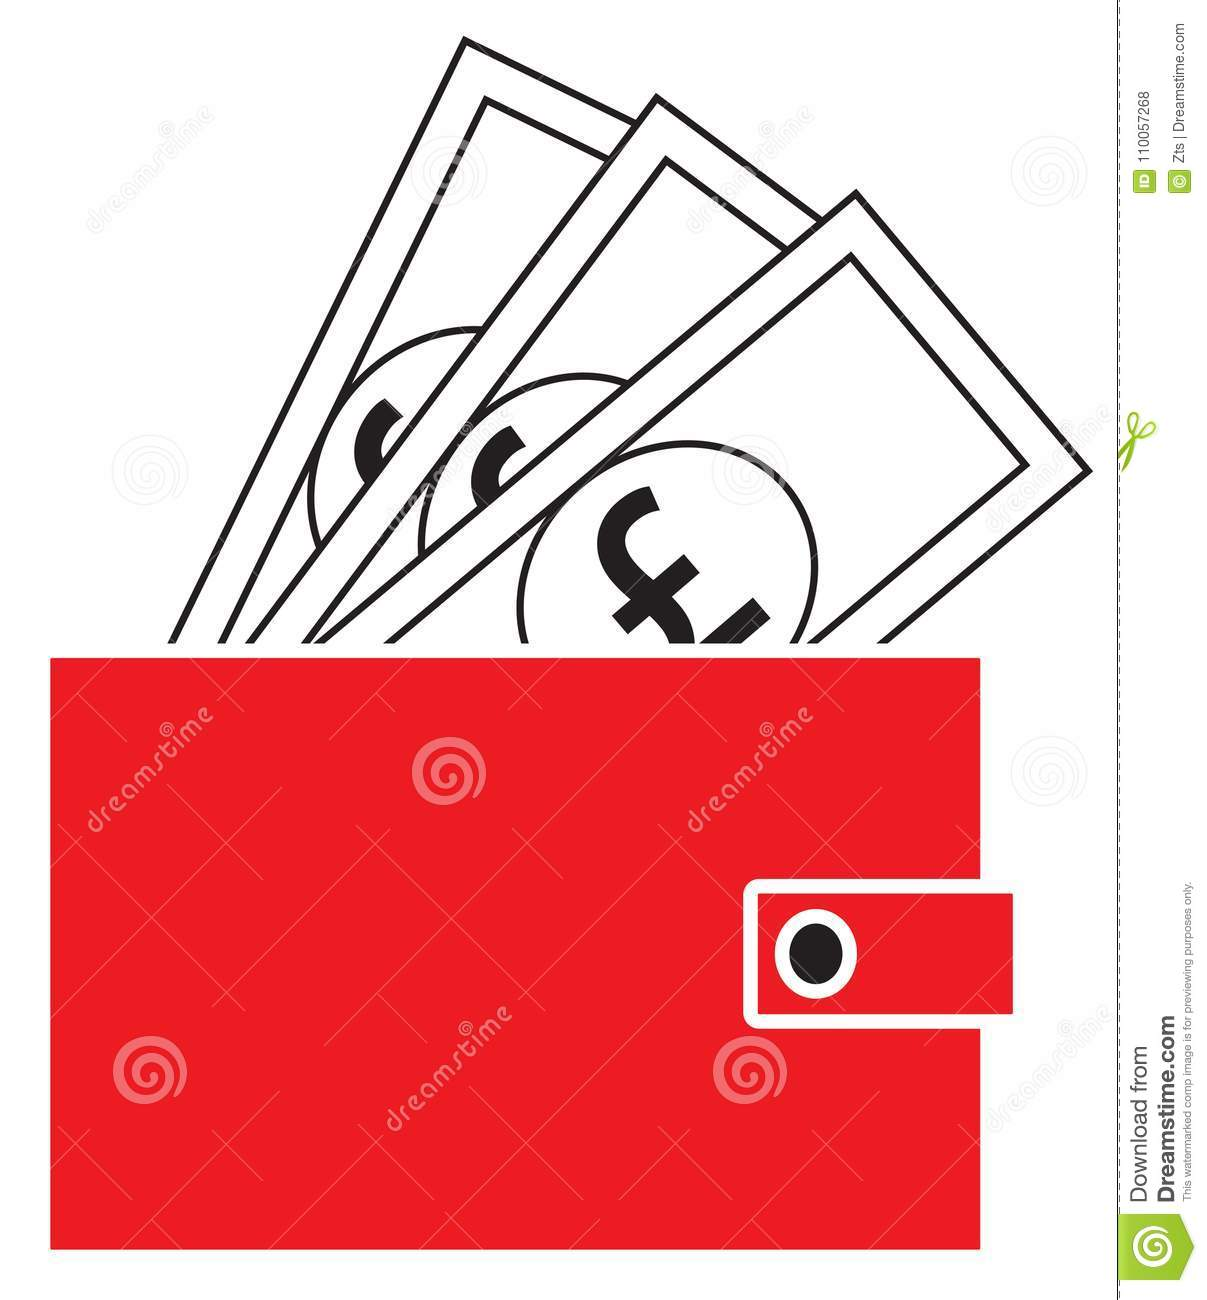 Pound Sterling Currency Icon Or Logo On Notes Popping Out Of A